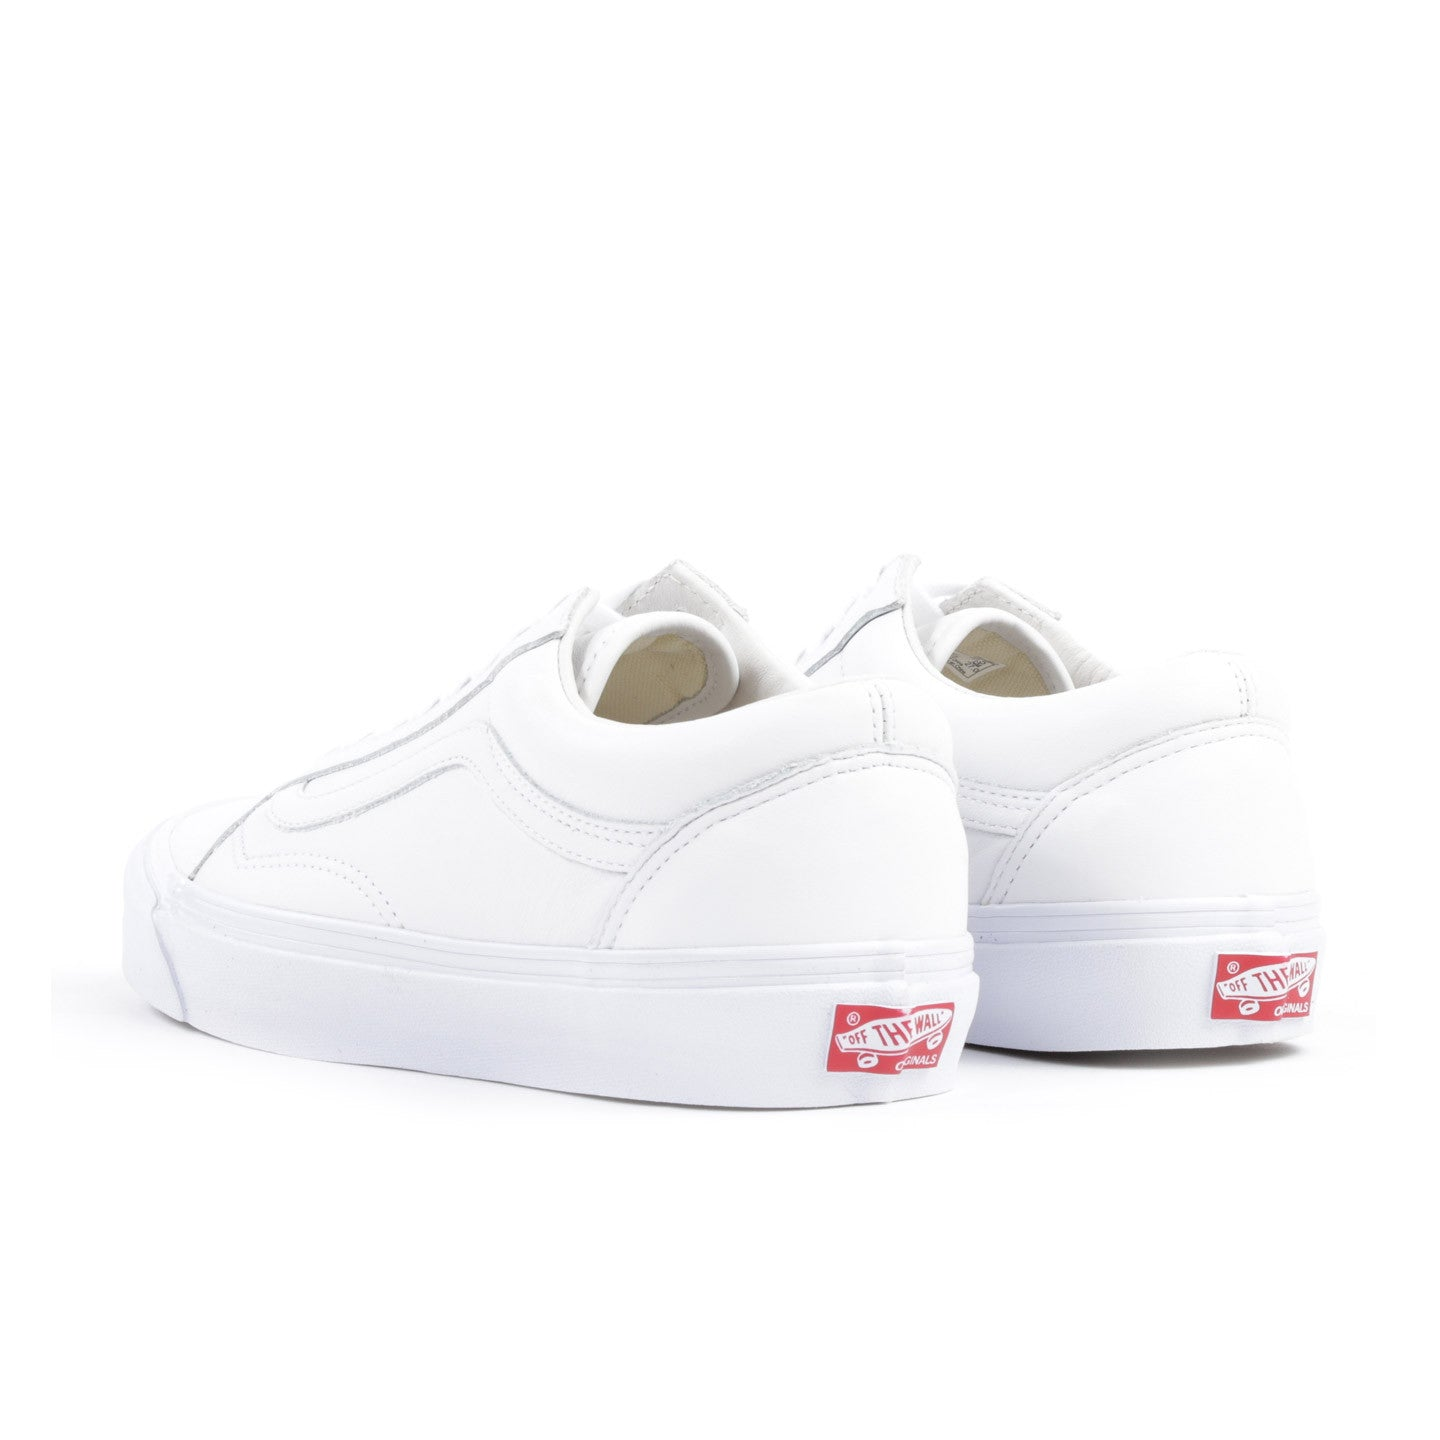 VAULT BY VANS OG OLD SKOOL LX WHITE LEATHER